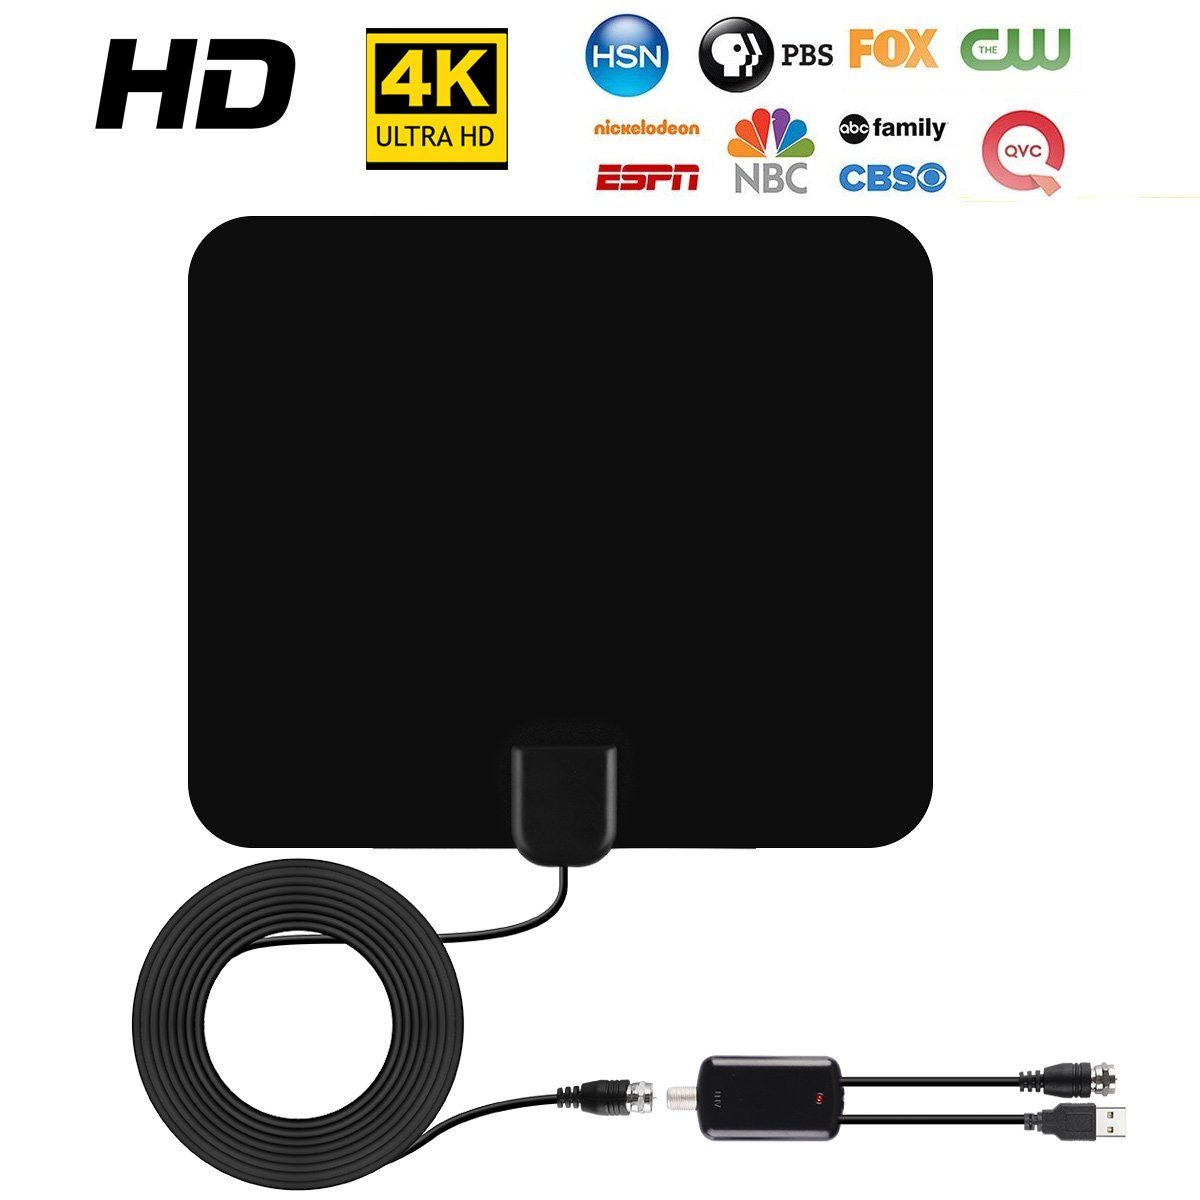 TV Antenna ,SUNRASE13ft Upgraded USB Powered Amplified Antenna1080P 50 Miles Range Indoor Digital HDTV Antenna Indoor with 13 FT Coax Cable for Local Channels